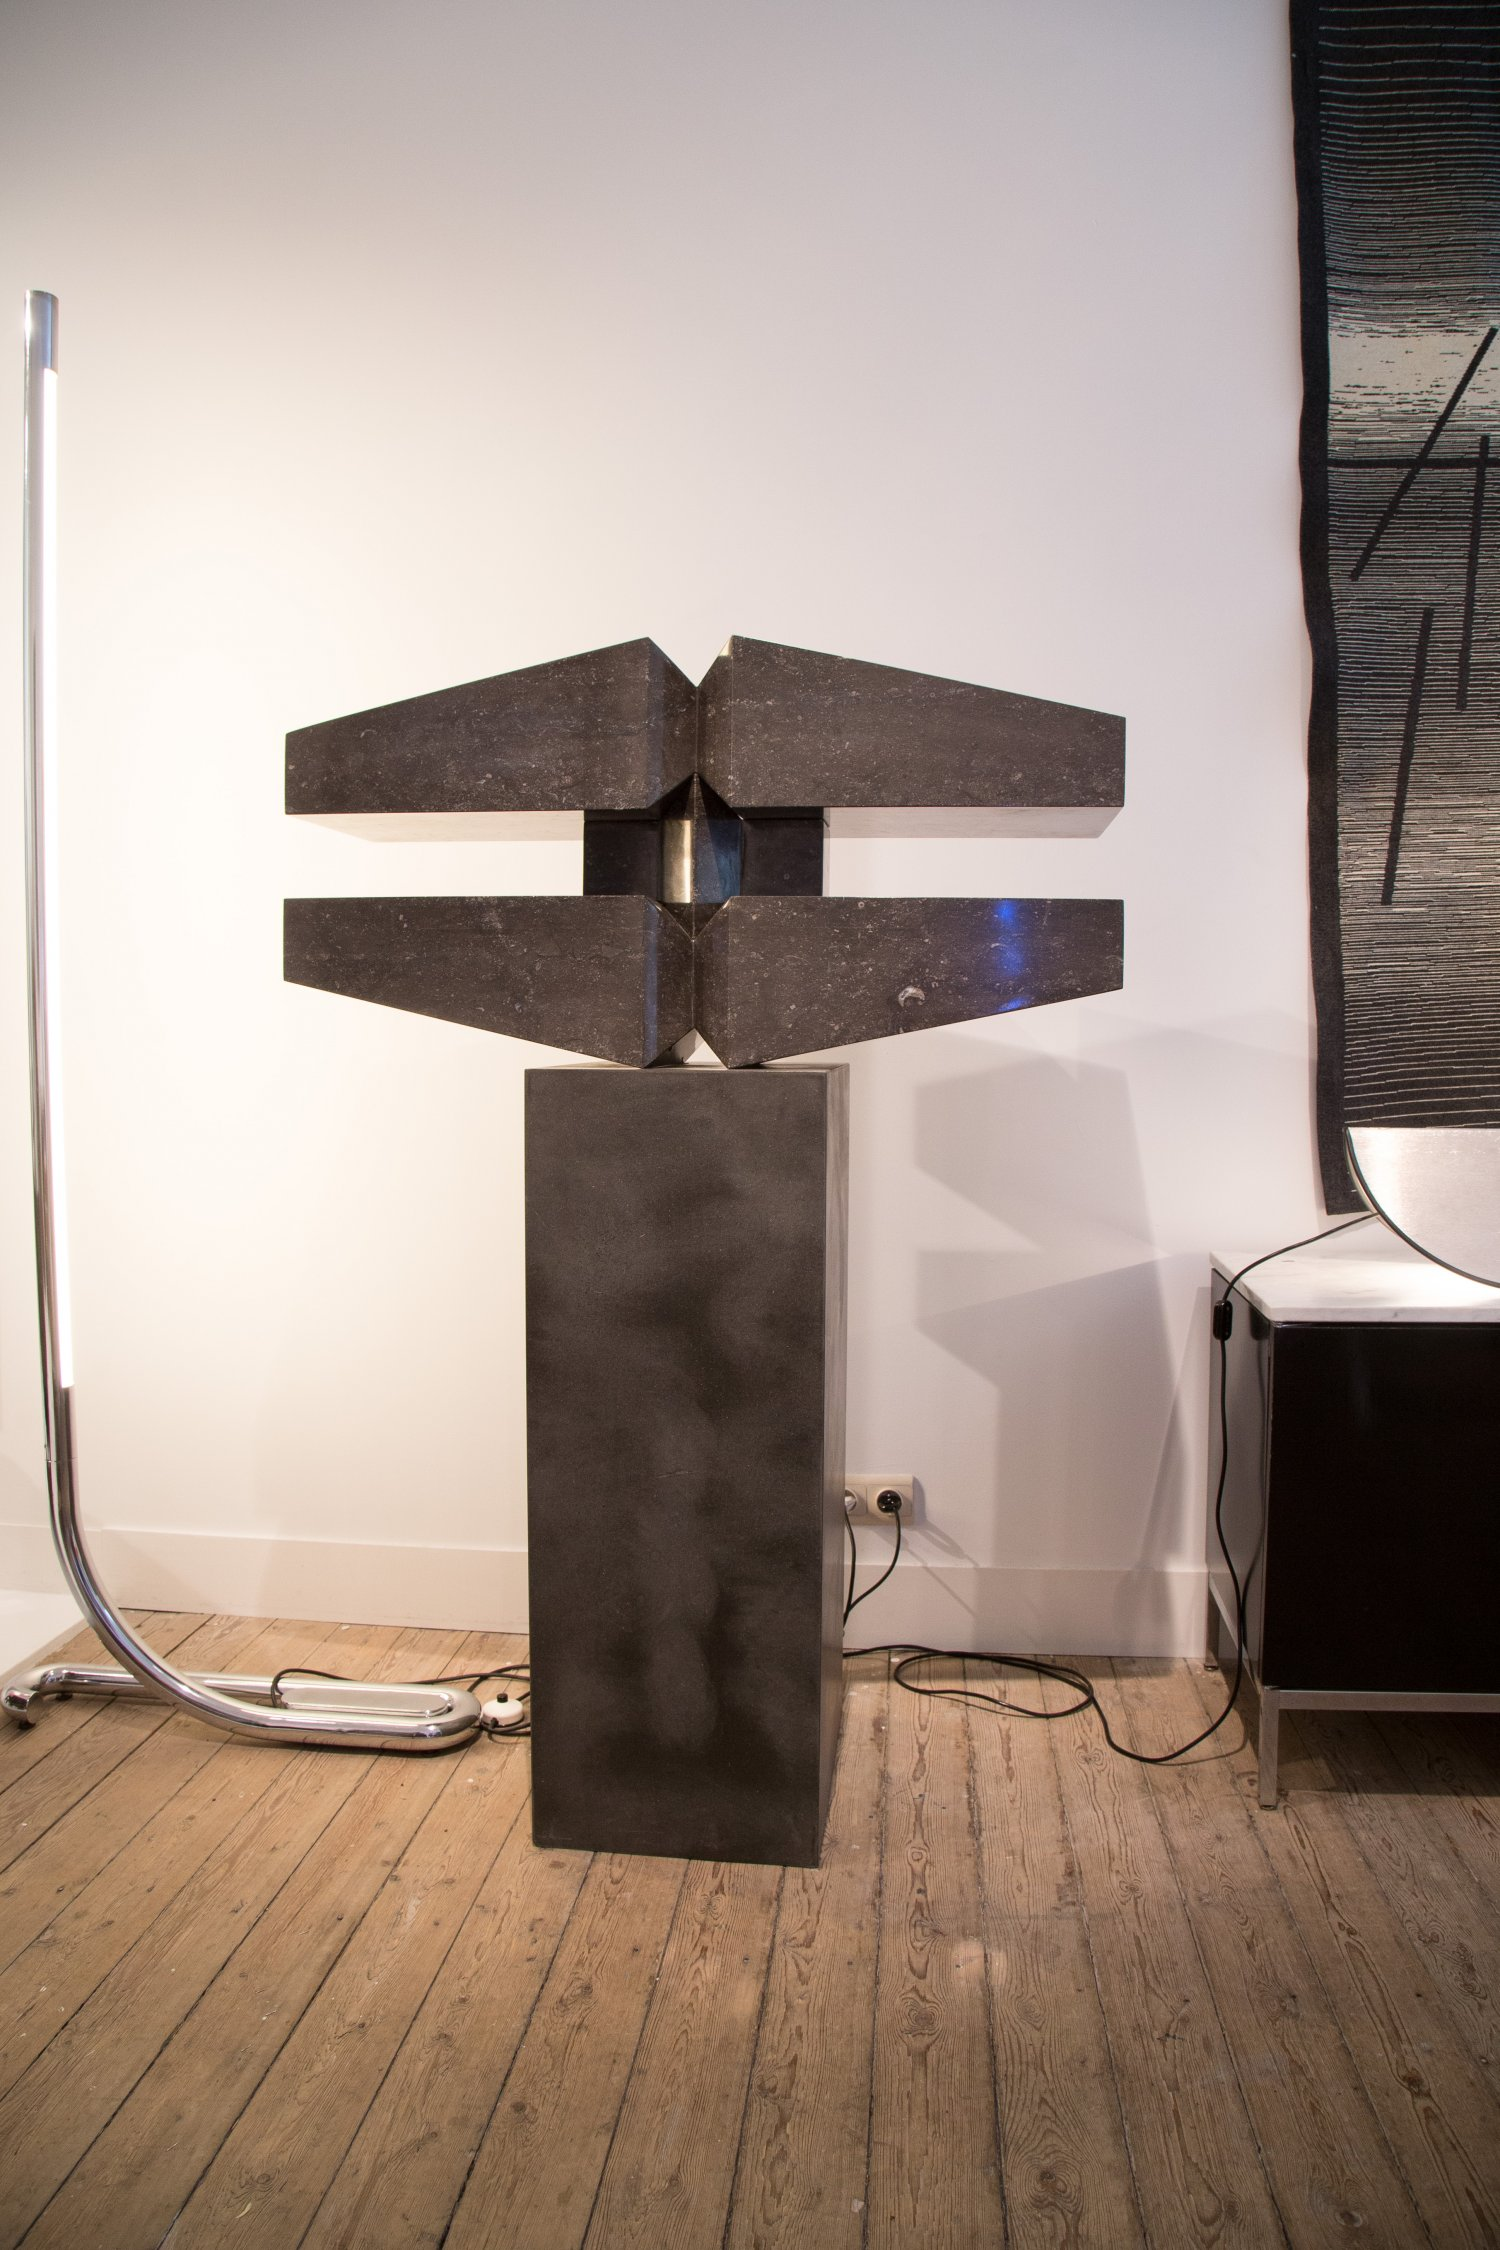 Renaat Ramon sculpture 1978